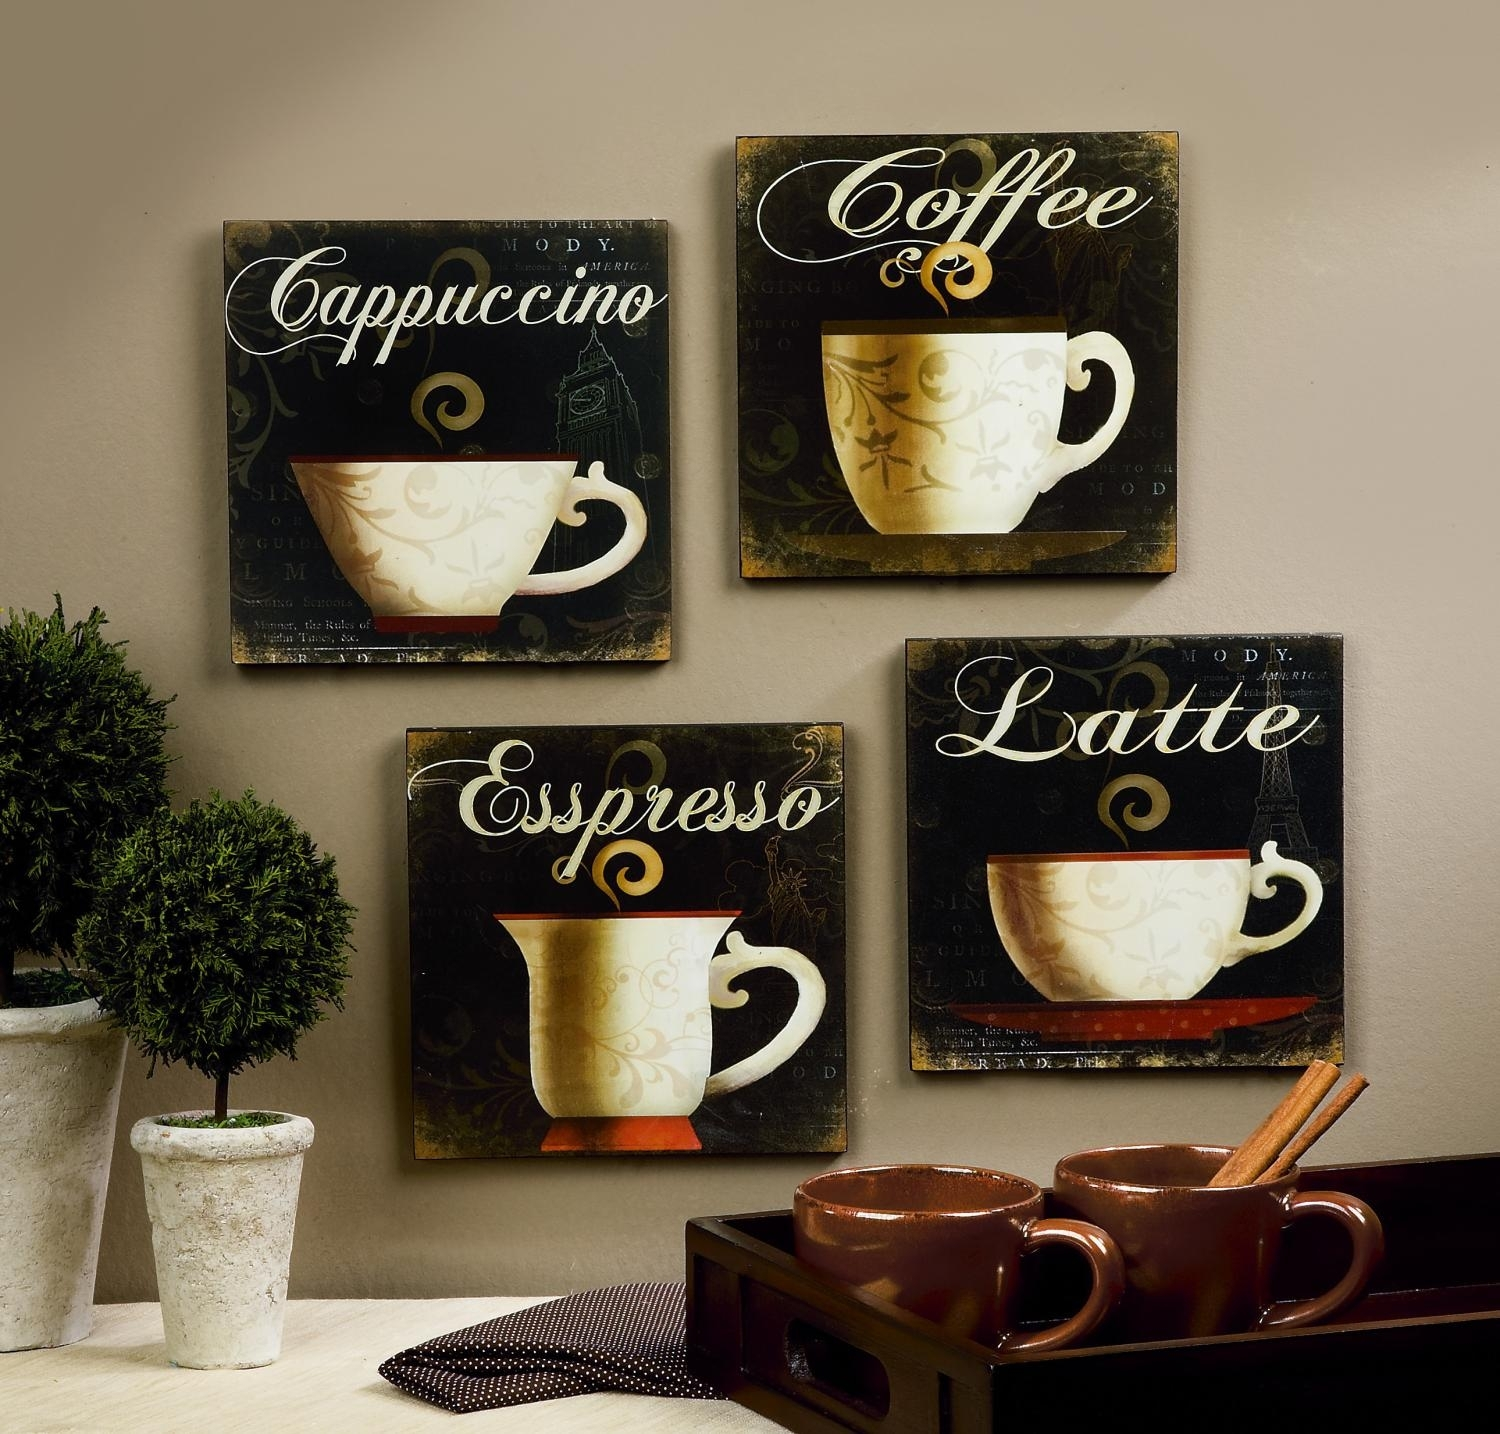 Wall Art Design Ideas: Simple House Coffee Wall Art Decorative With Recent Coffee Canvas Wall Art (Gallery 2 of 15)